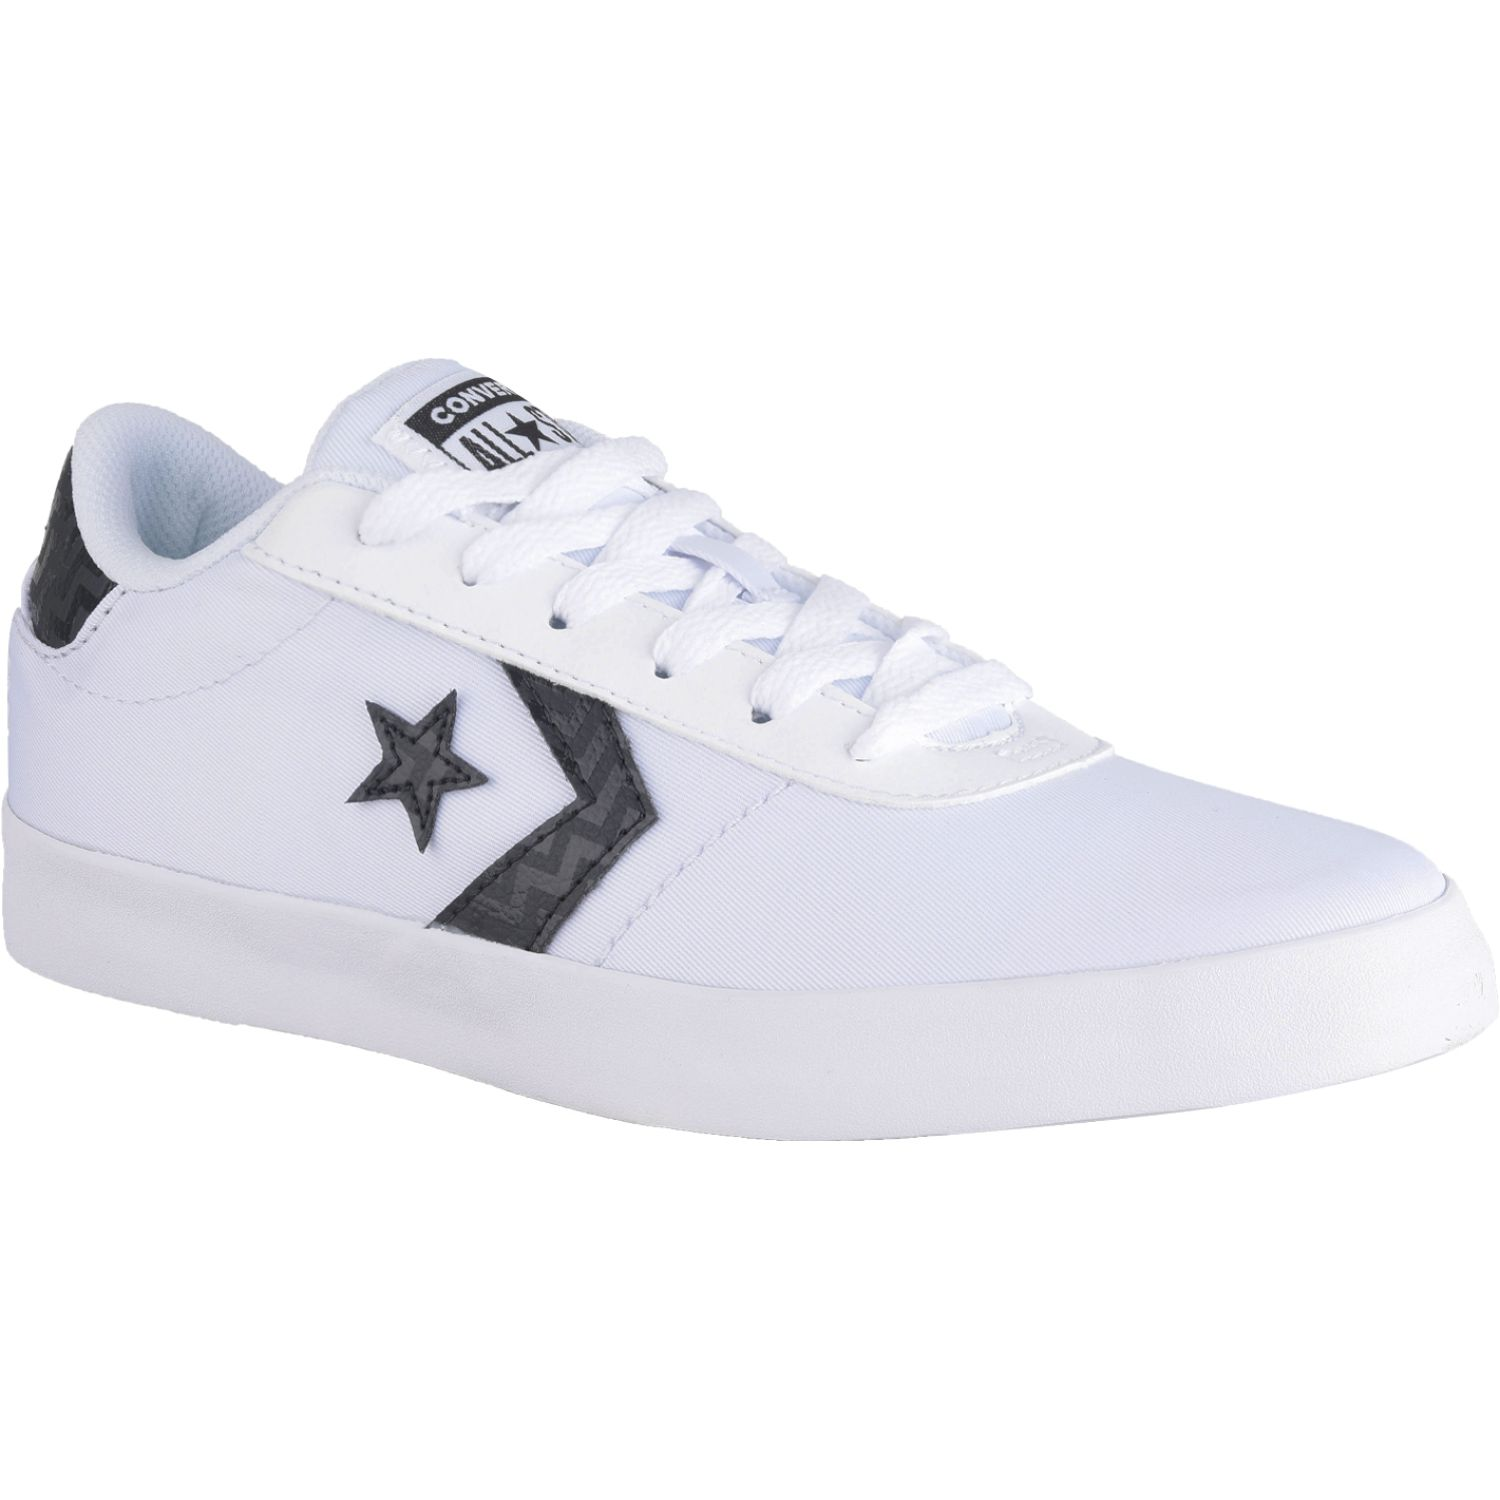 Converse converse point star glam dunk Blanco / negro Walking